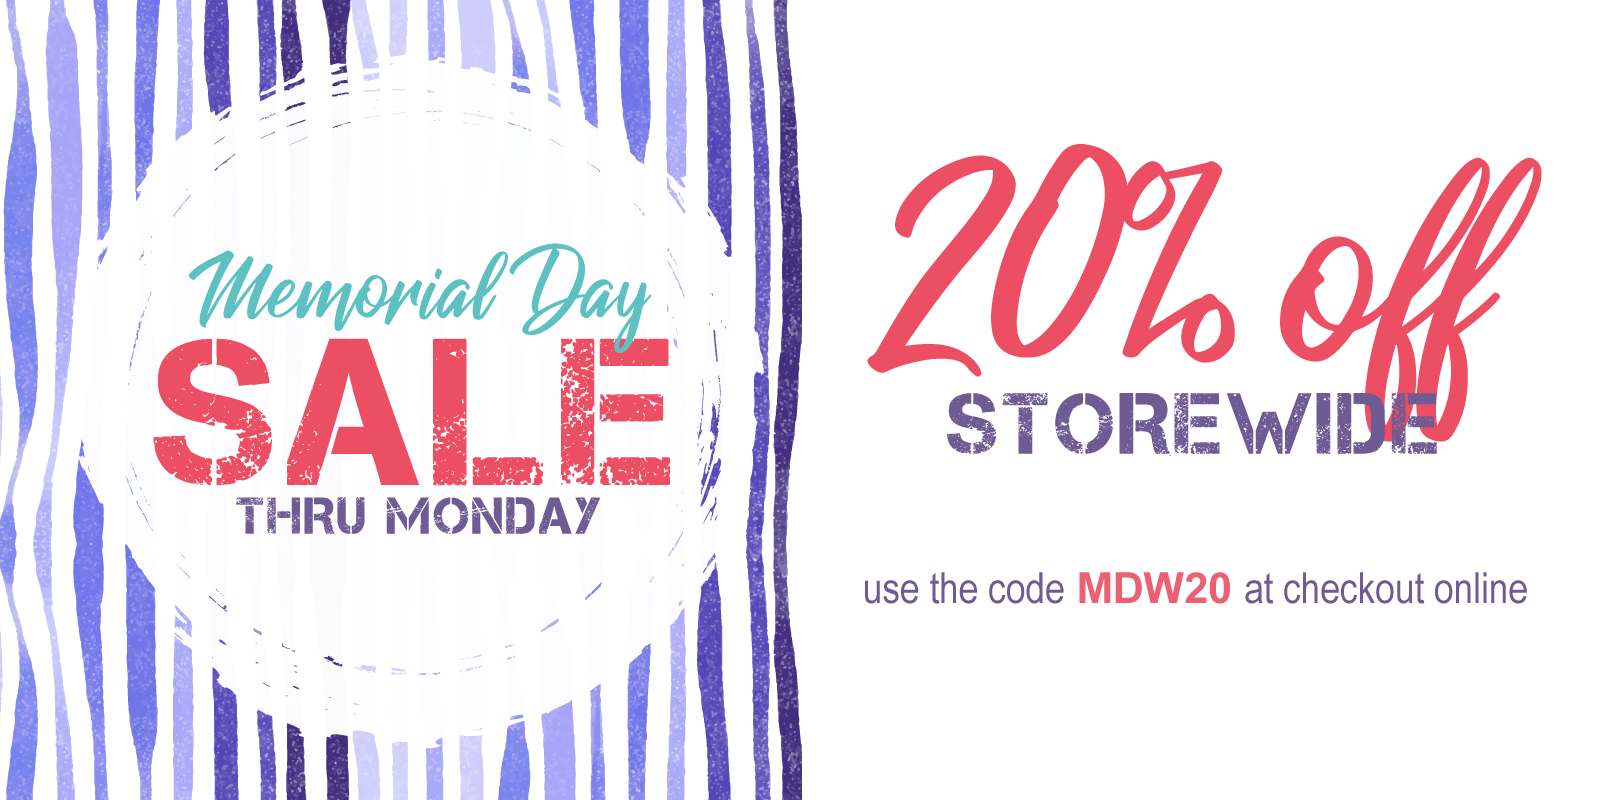 Use MDW20 at checkout for 20% off almost everything!